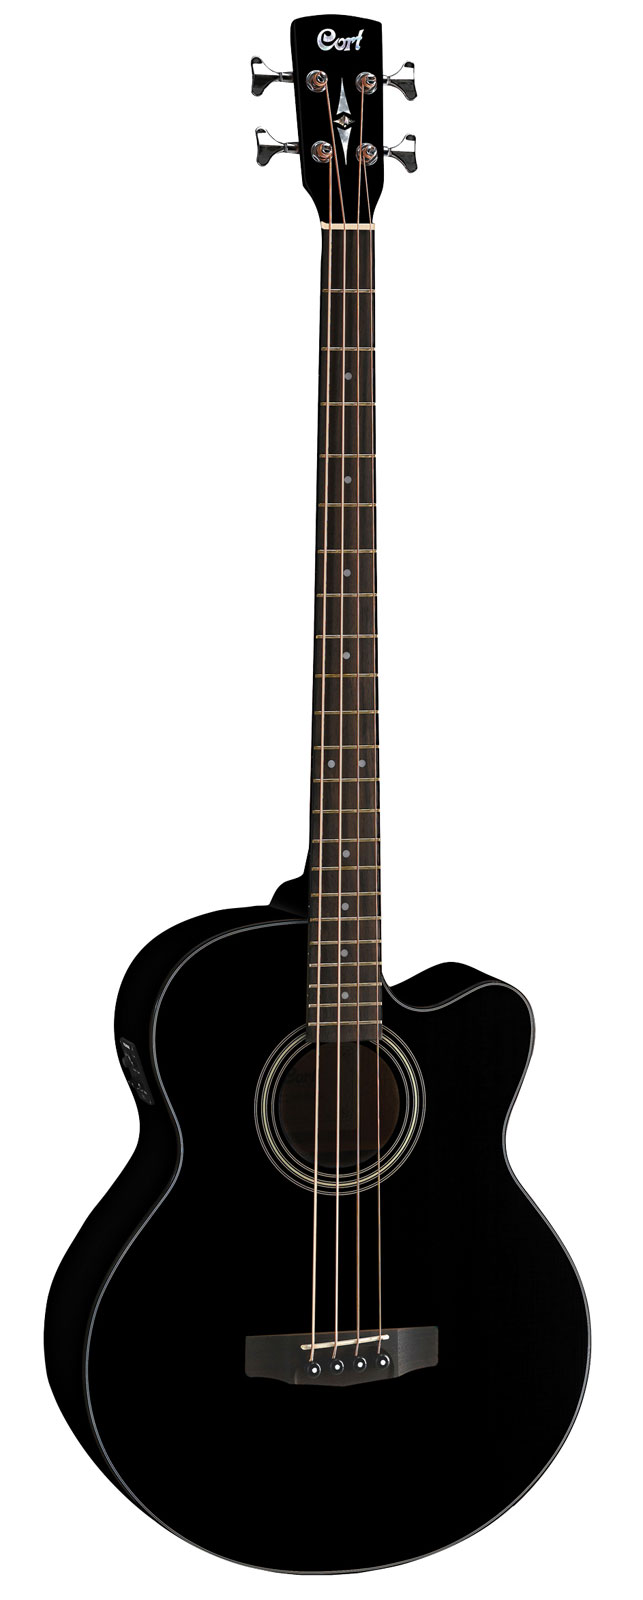 Cort Sjb5f Gloss Black + Housse